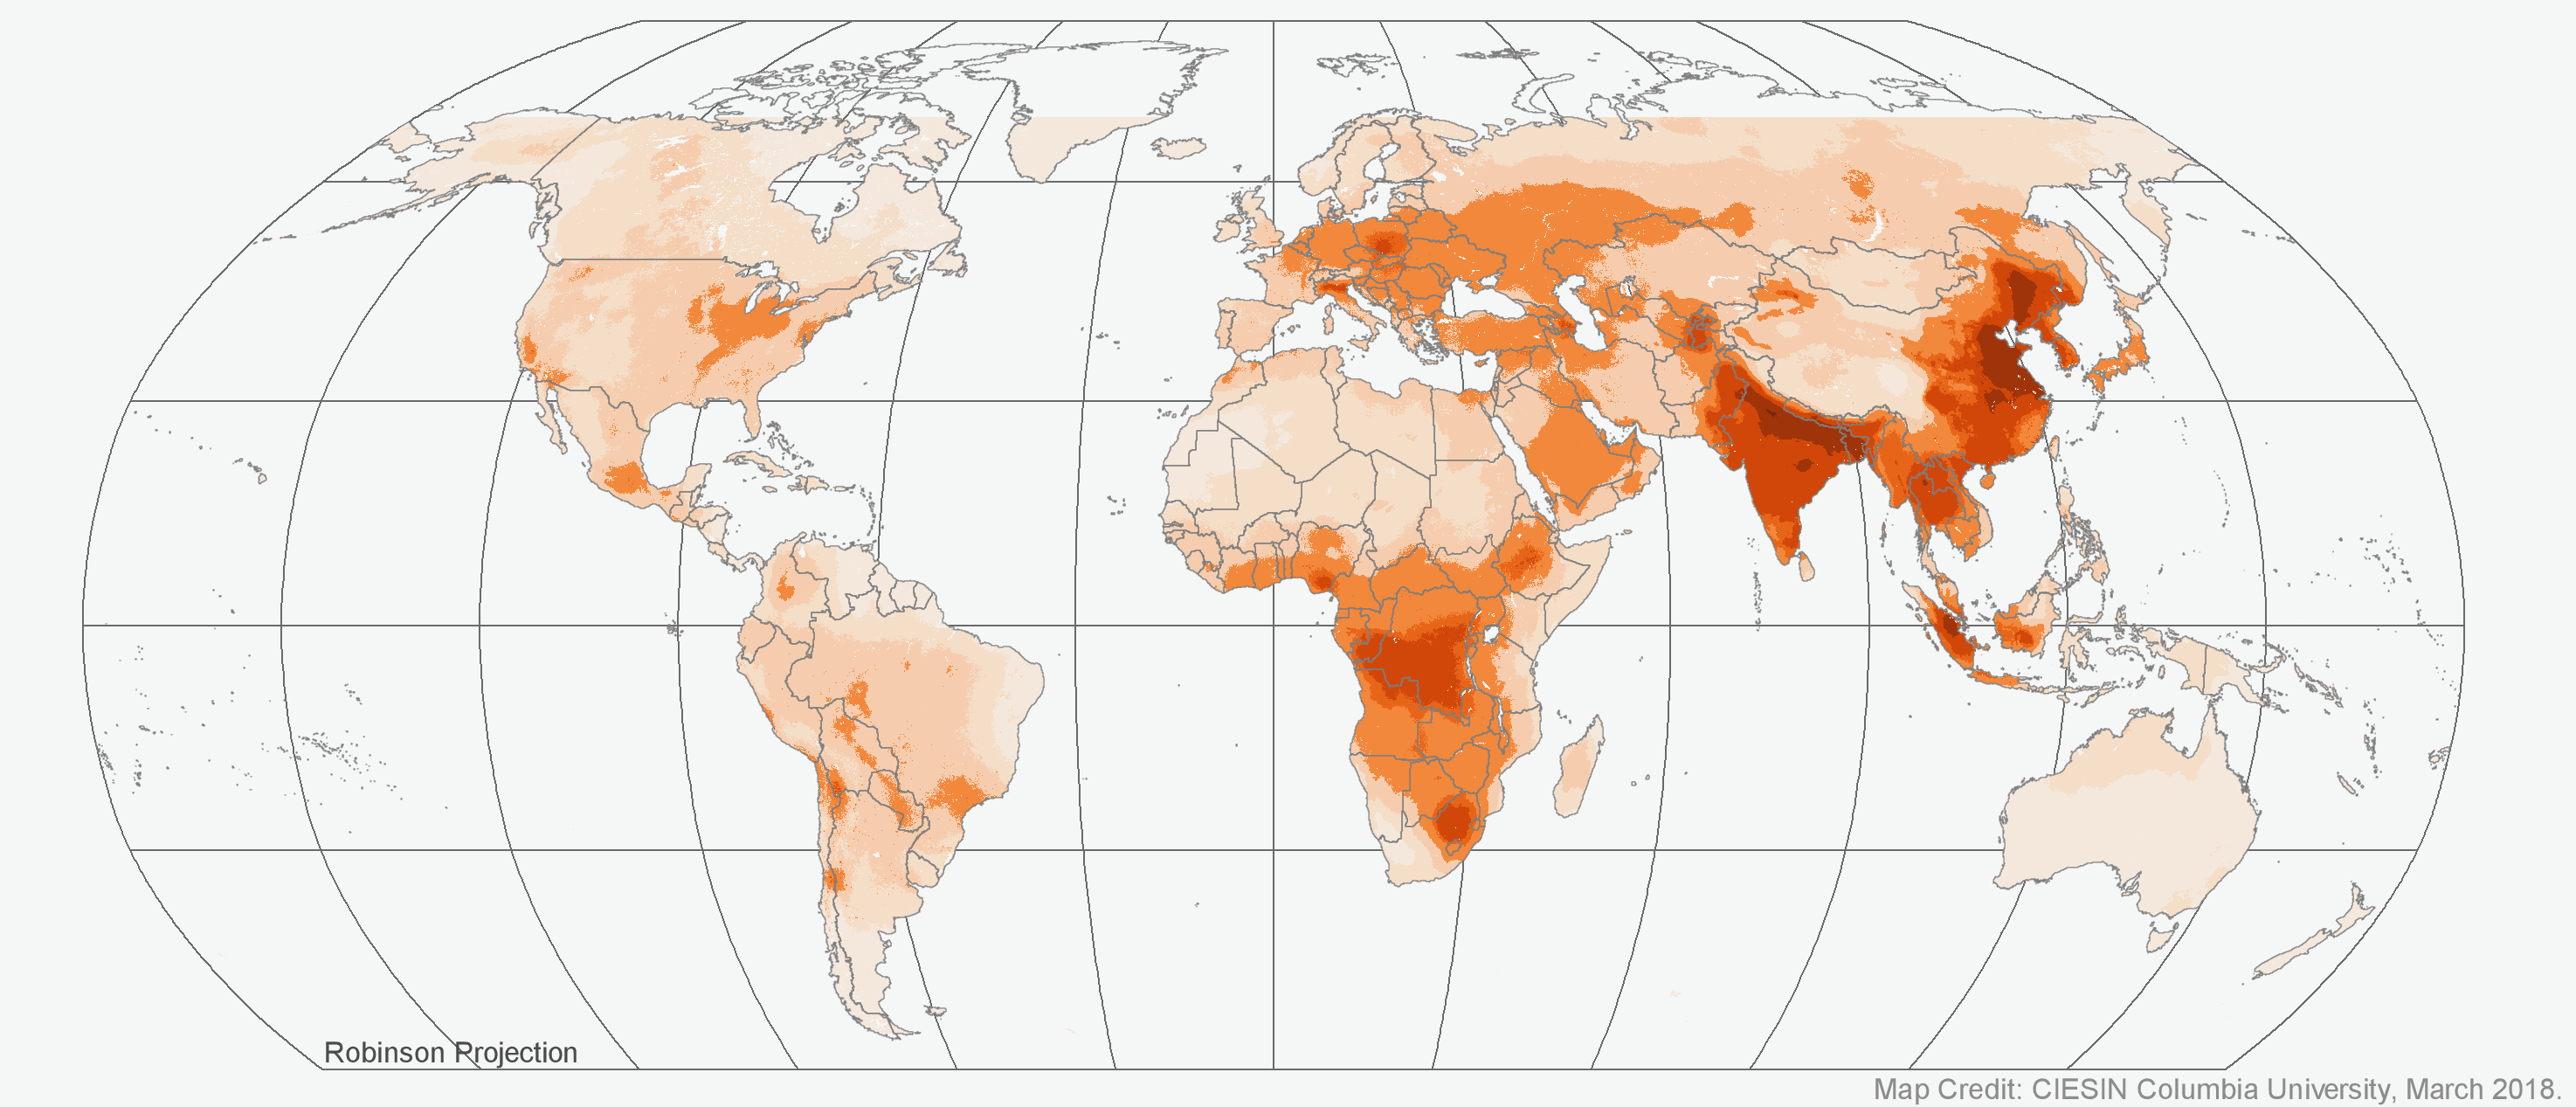 Annual global surface of concentrations (micrograms per cubic meter) of mineral dust and sea-salt filtered fine particulate matter of 2.5 micrometers or smaller (PM2.5) as visualized in Worldview. Credit: NASA